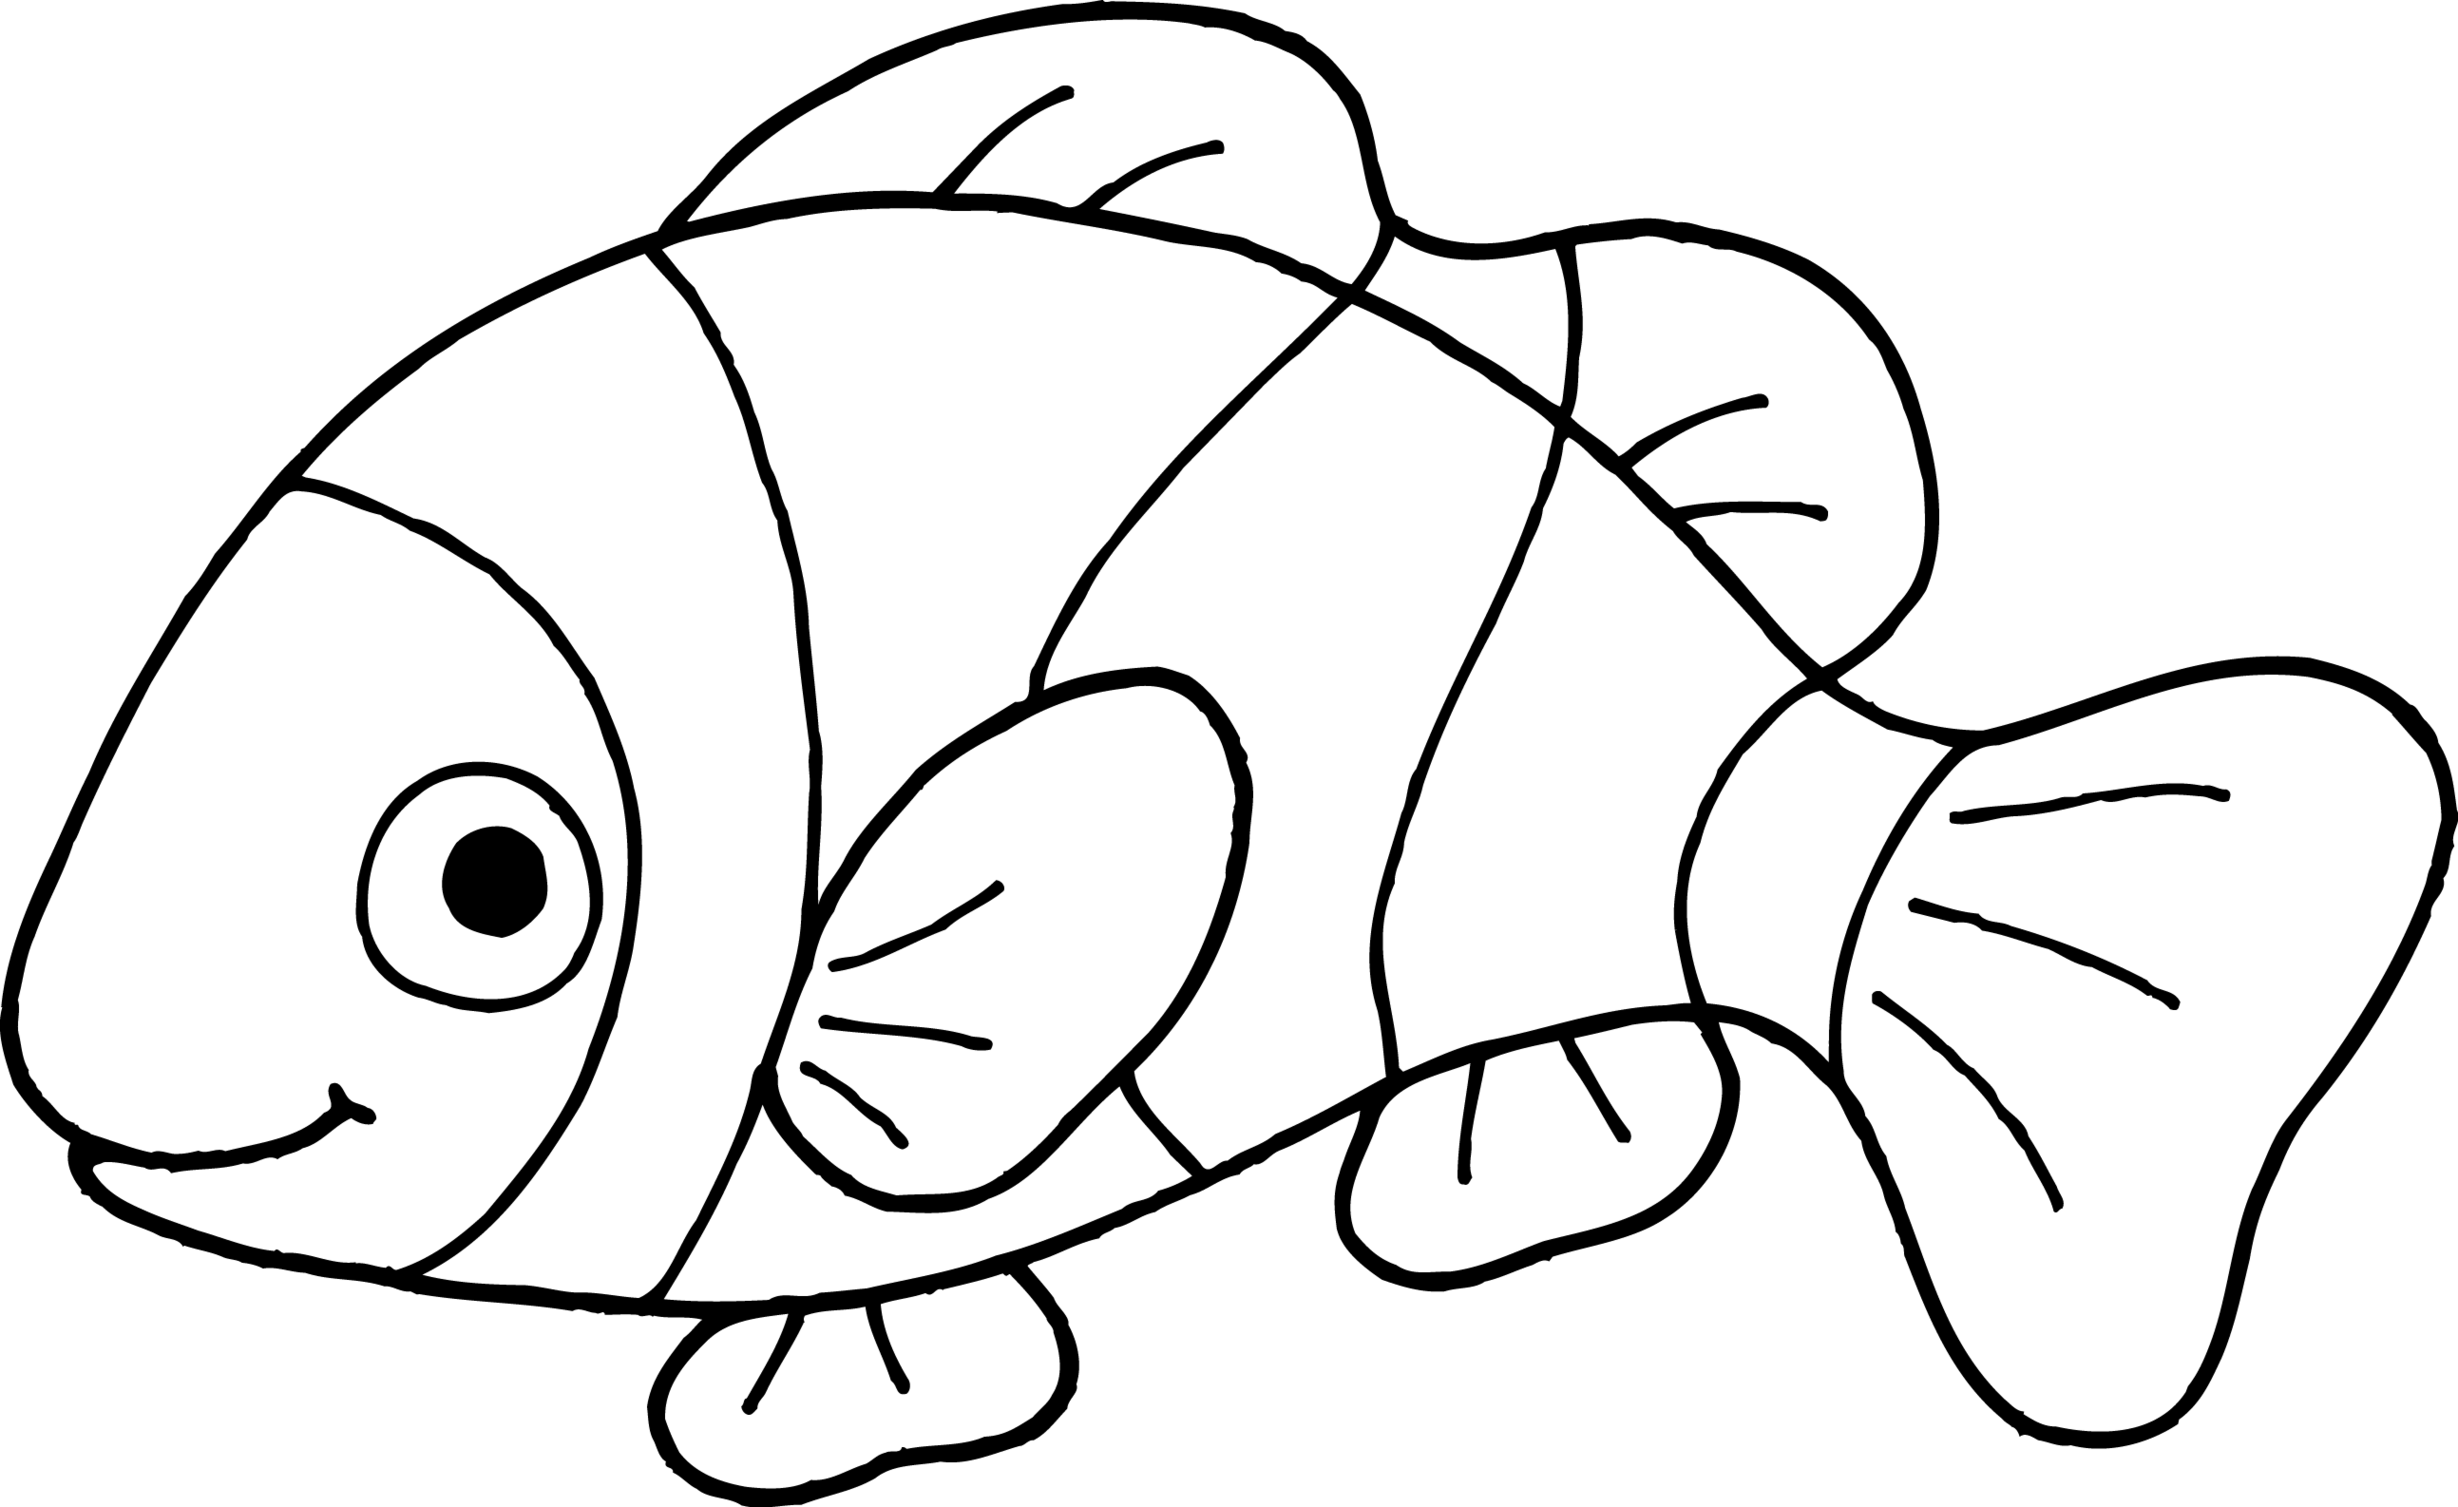 Fly fish clipart black and white. Nemo png transparent x